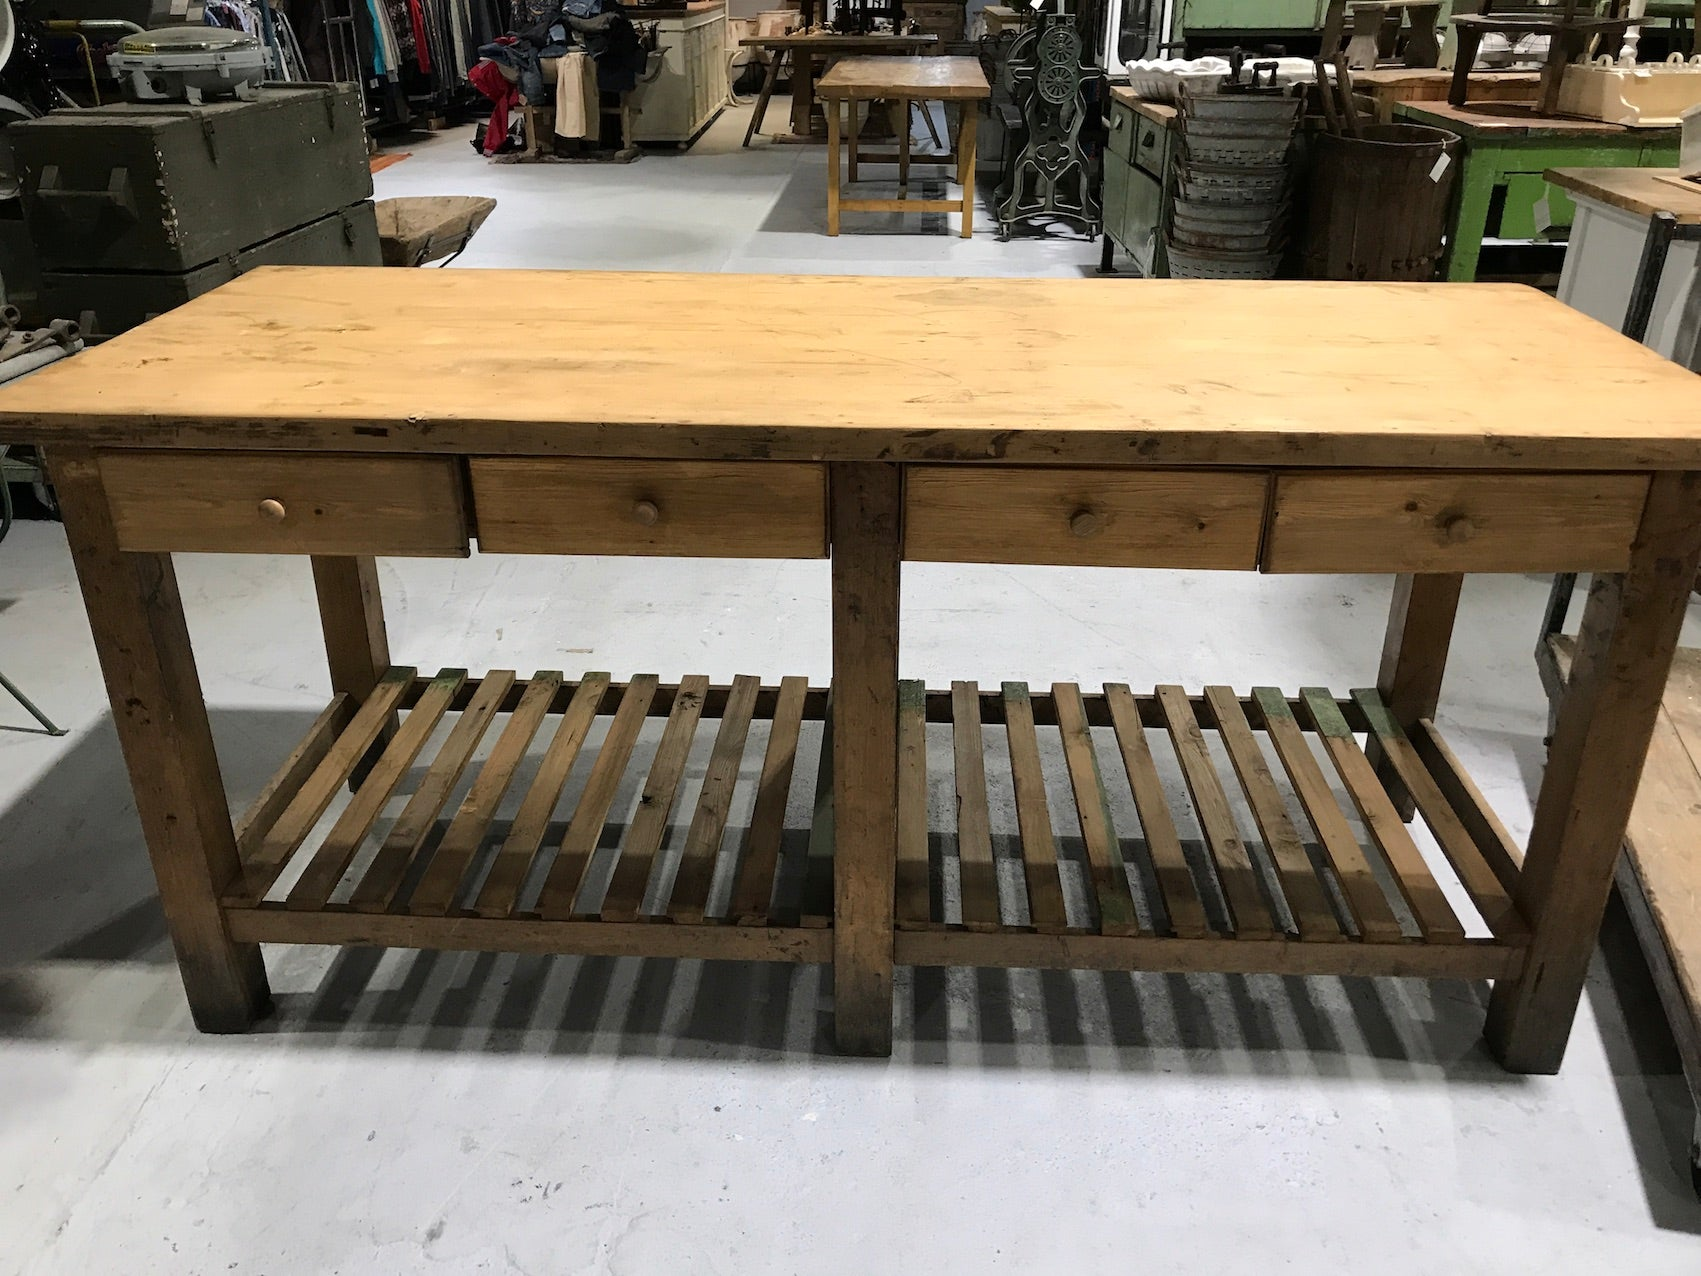 Vintage industrial European workbench kitchen island table counter  #2035 Byron Warehouse